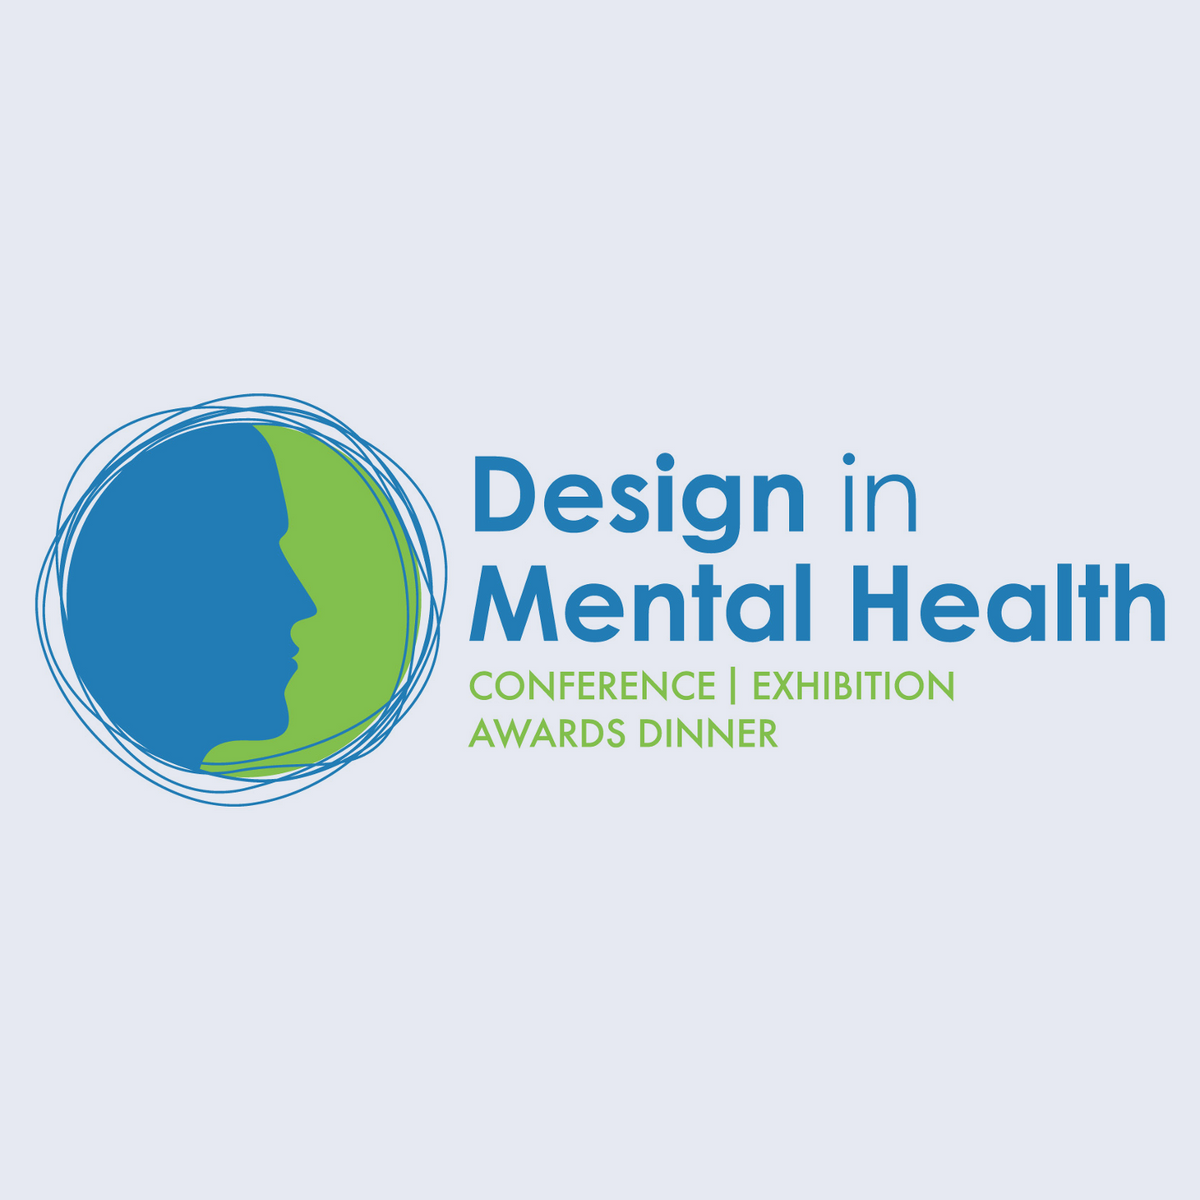 doppel shortlisted for Product Innovation of the Year at the 2019 Design in Mental Health Awards